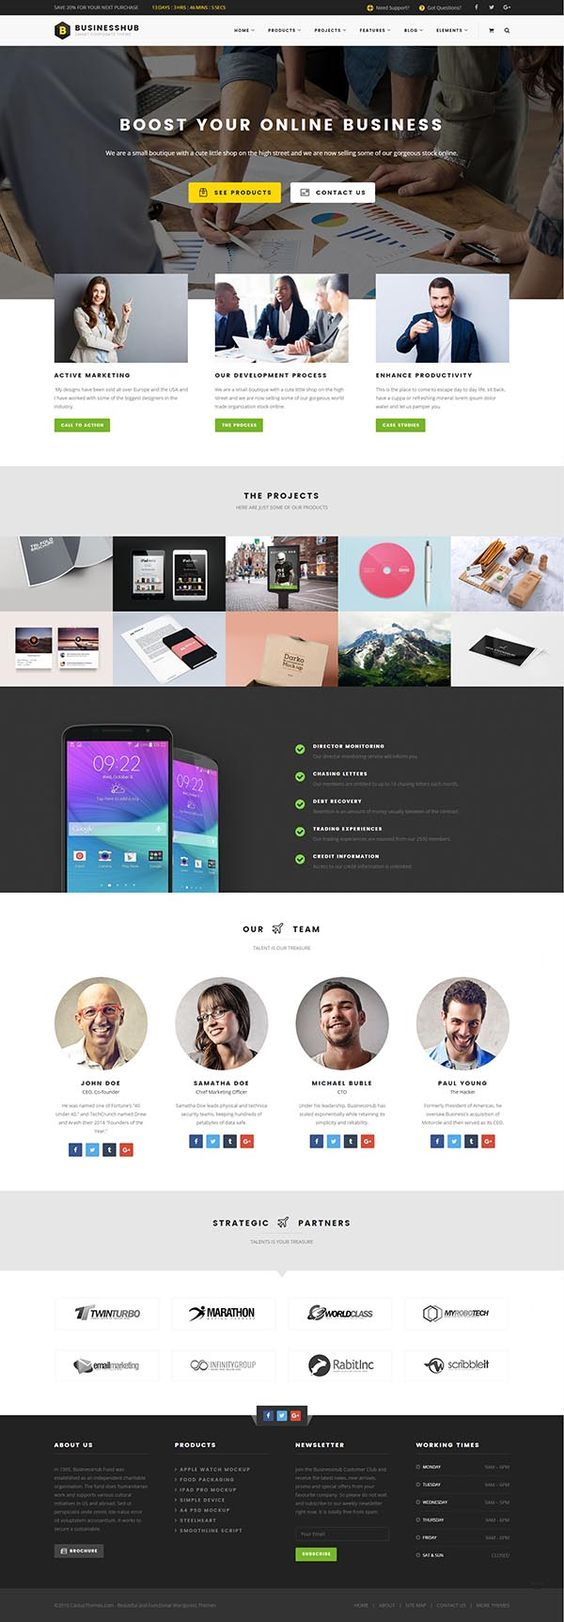 Business Hub / Responsive WordPress Theme for Online Business by Cactusthemes